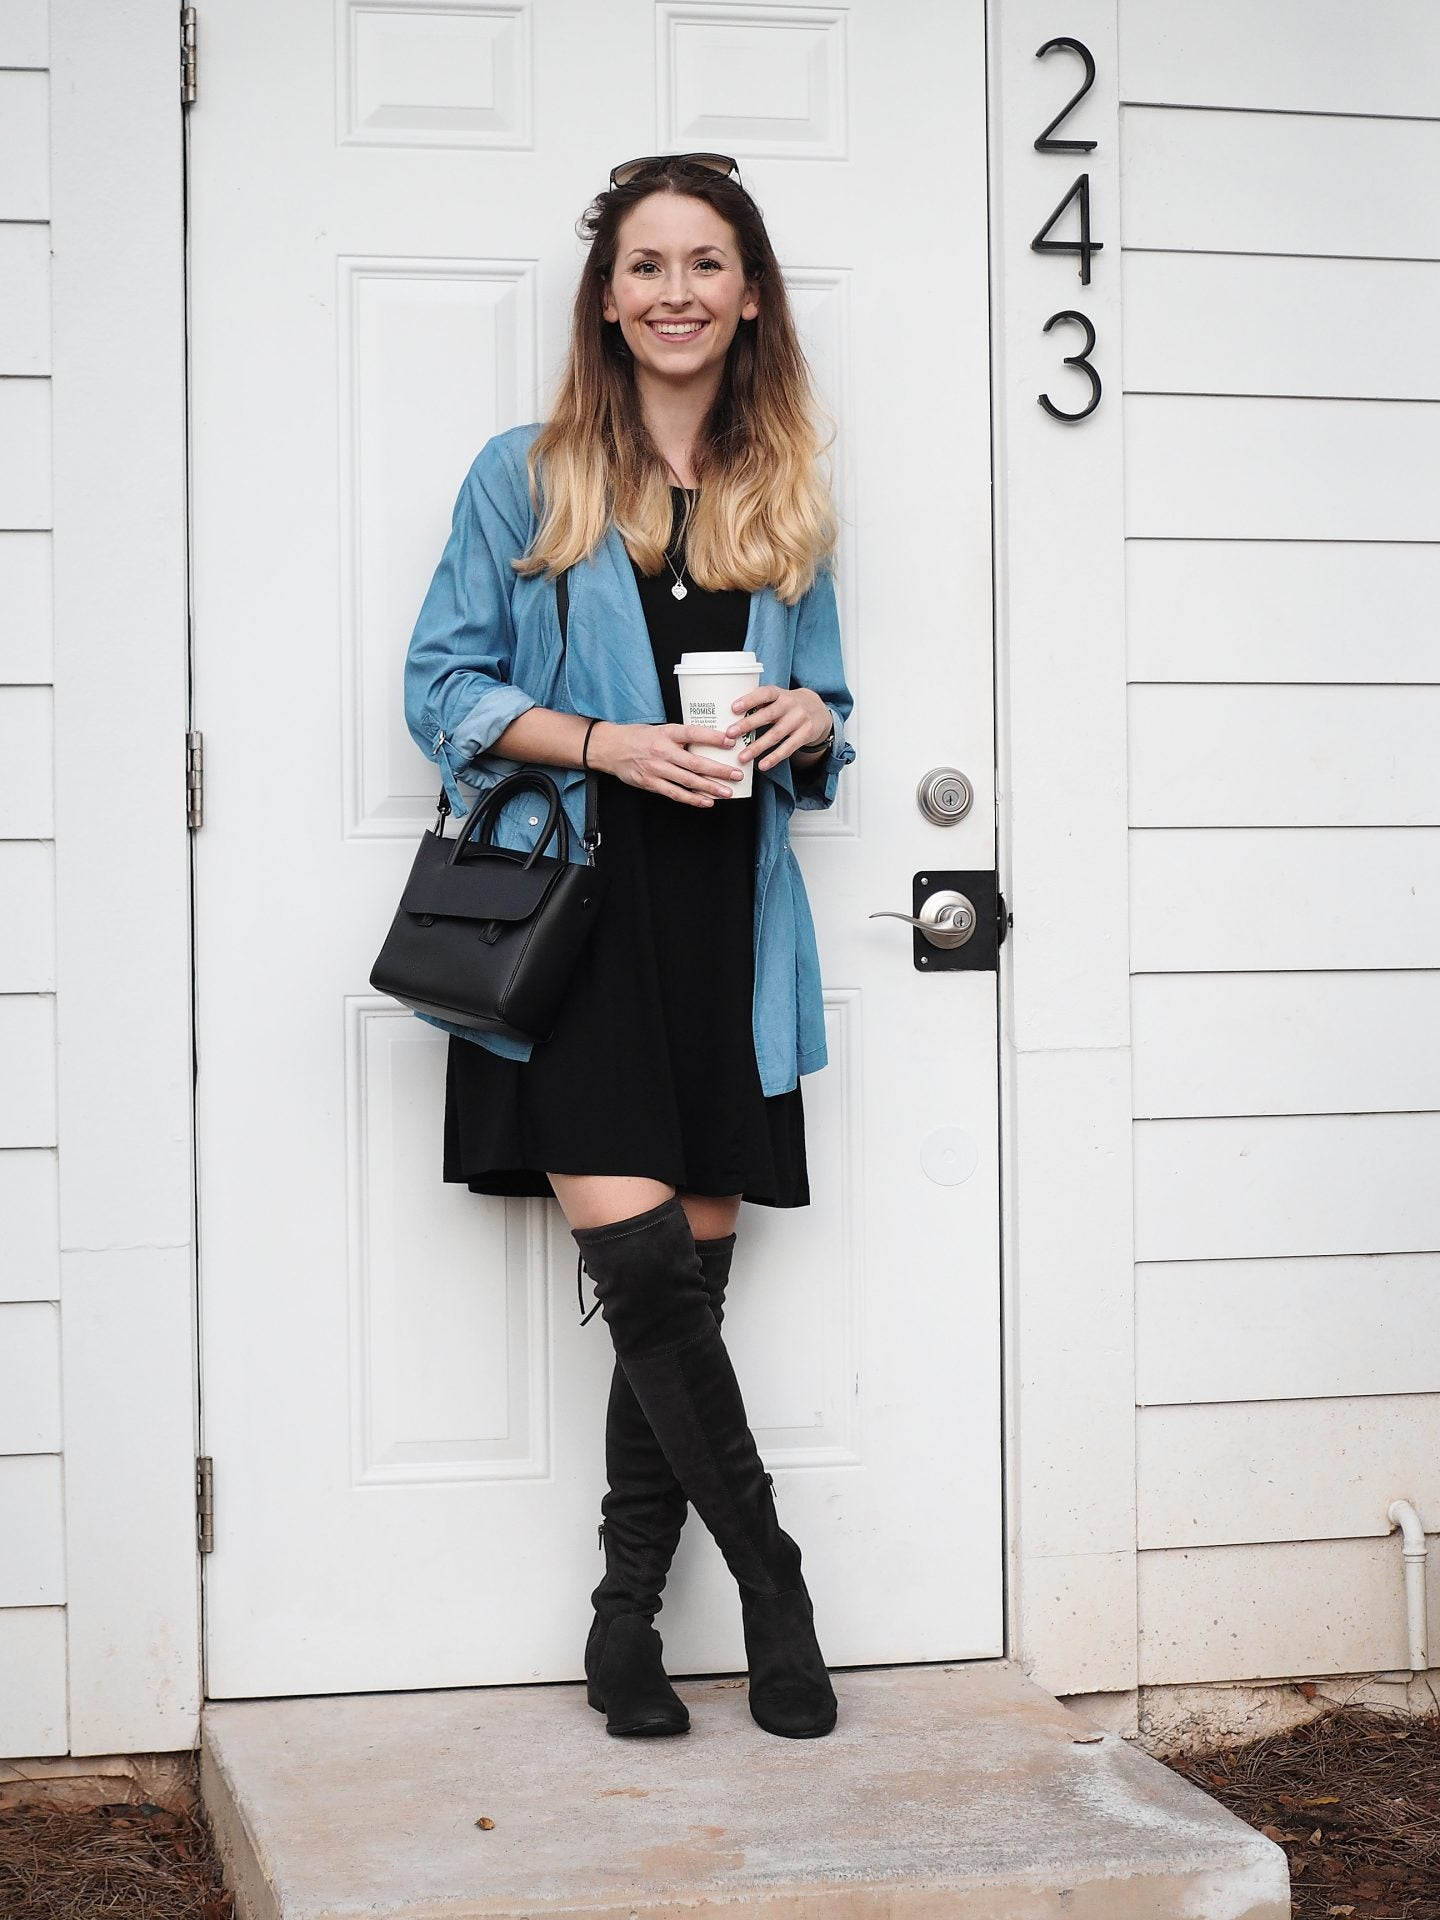 FALL TIME WITH HIELEVEN by @shedoesfashion